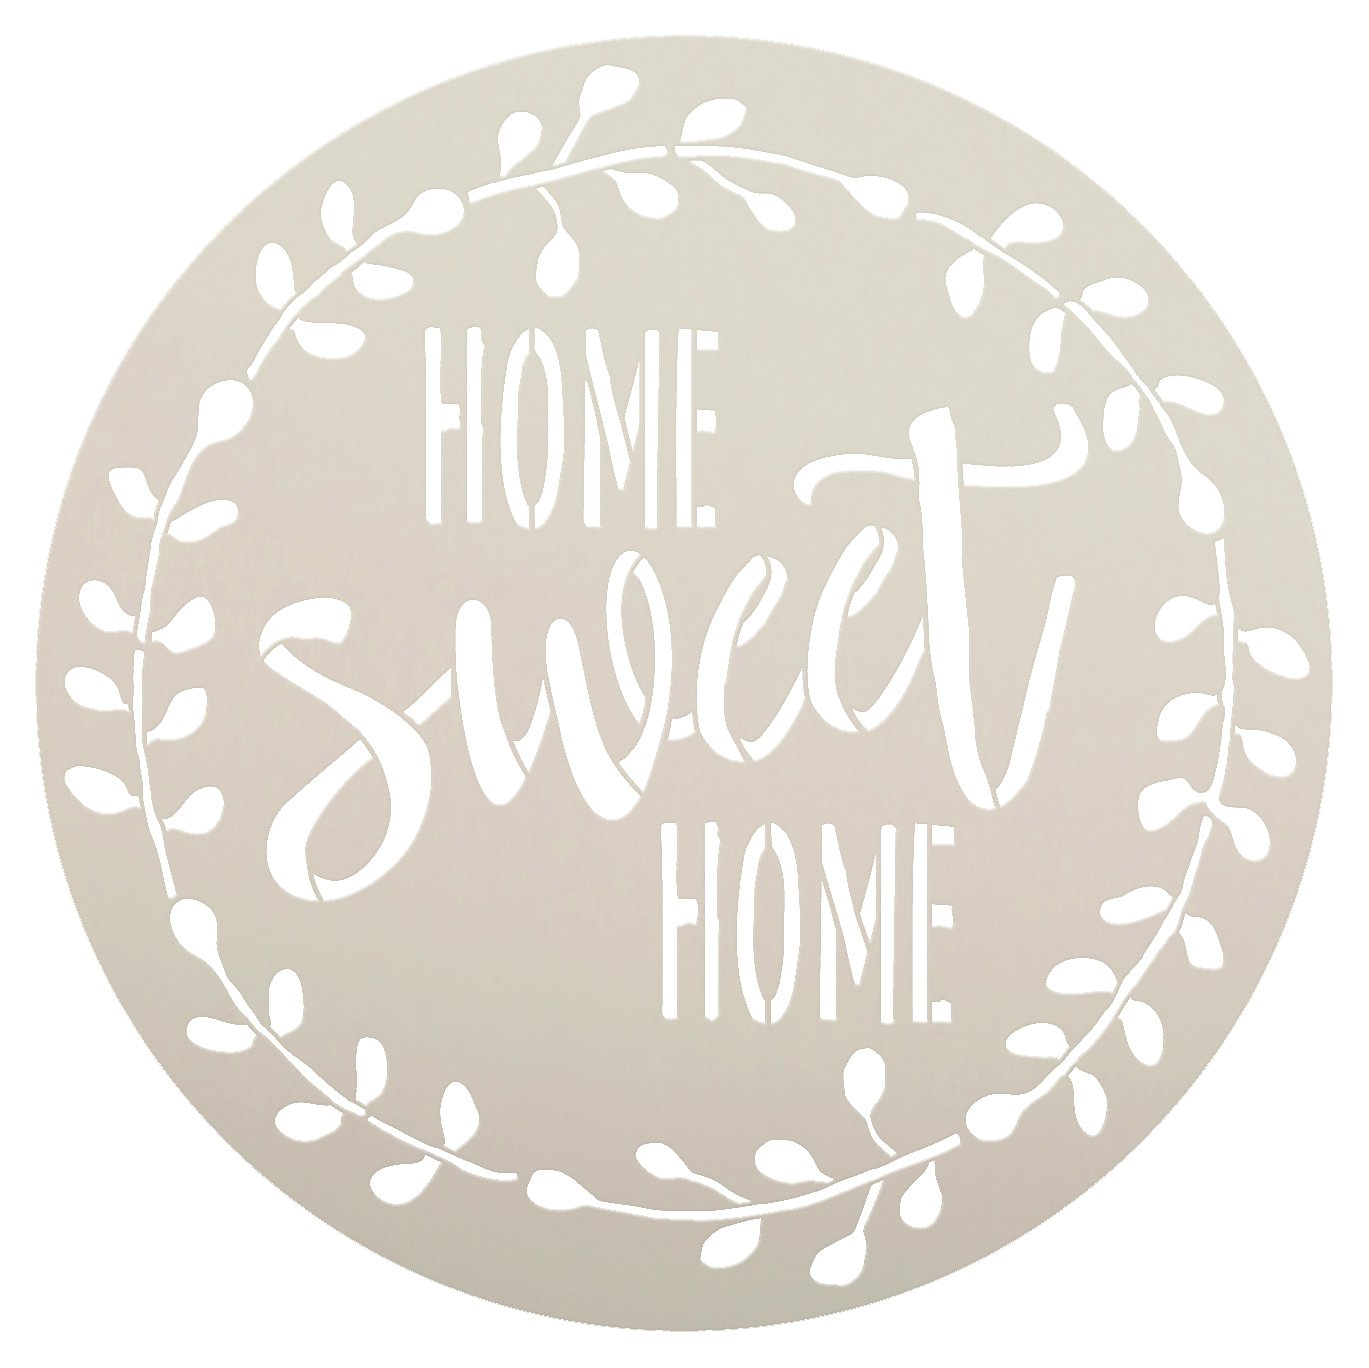 "Home Sweet Home Stencil with Laurel Wreath by StudioR12 | Reusable Mylar Template for Painting Wood Signs | Round Design | DIY Home Decor Country Farmhouse Style | Mixed Media | Select Size (12"")"